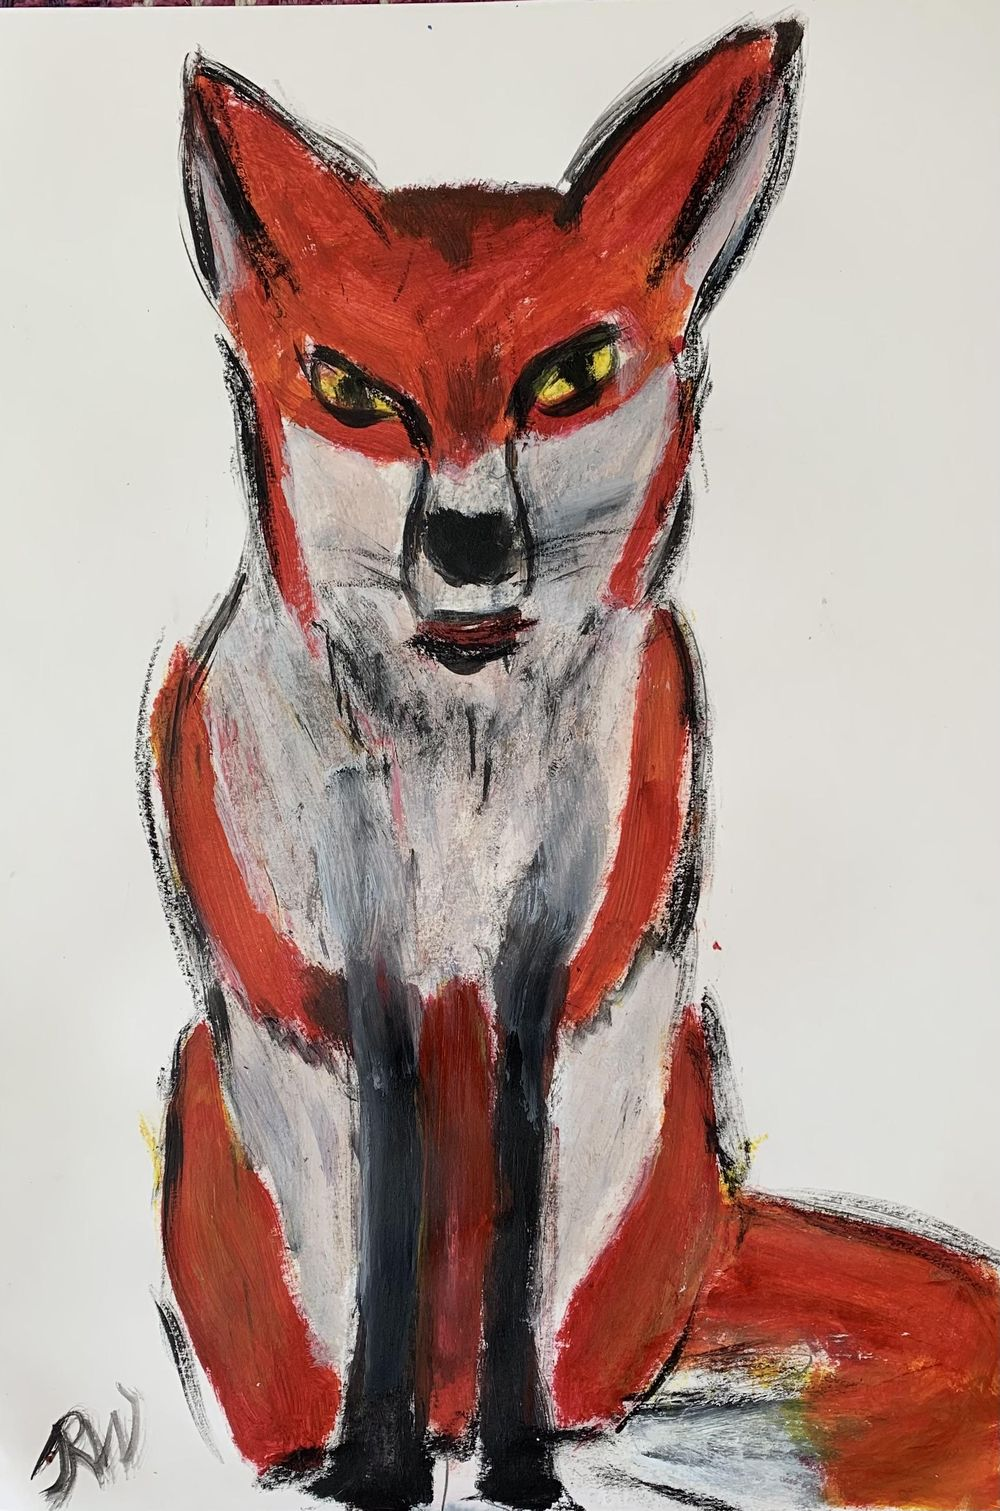 Abstract animals - image 18 - student project